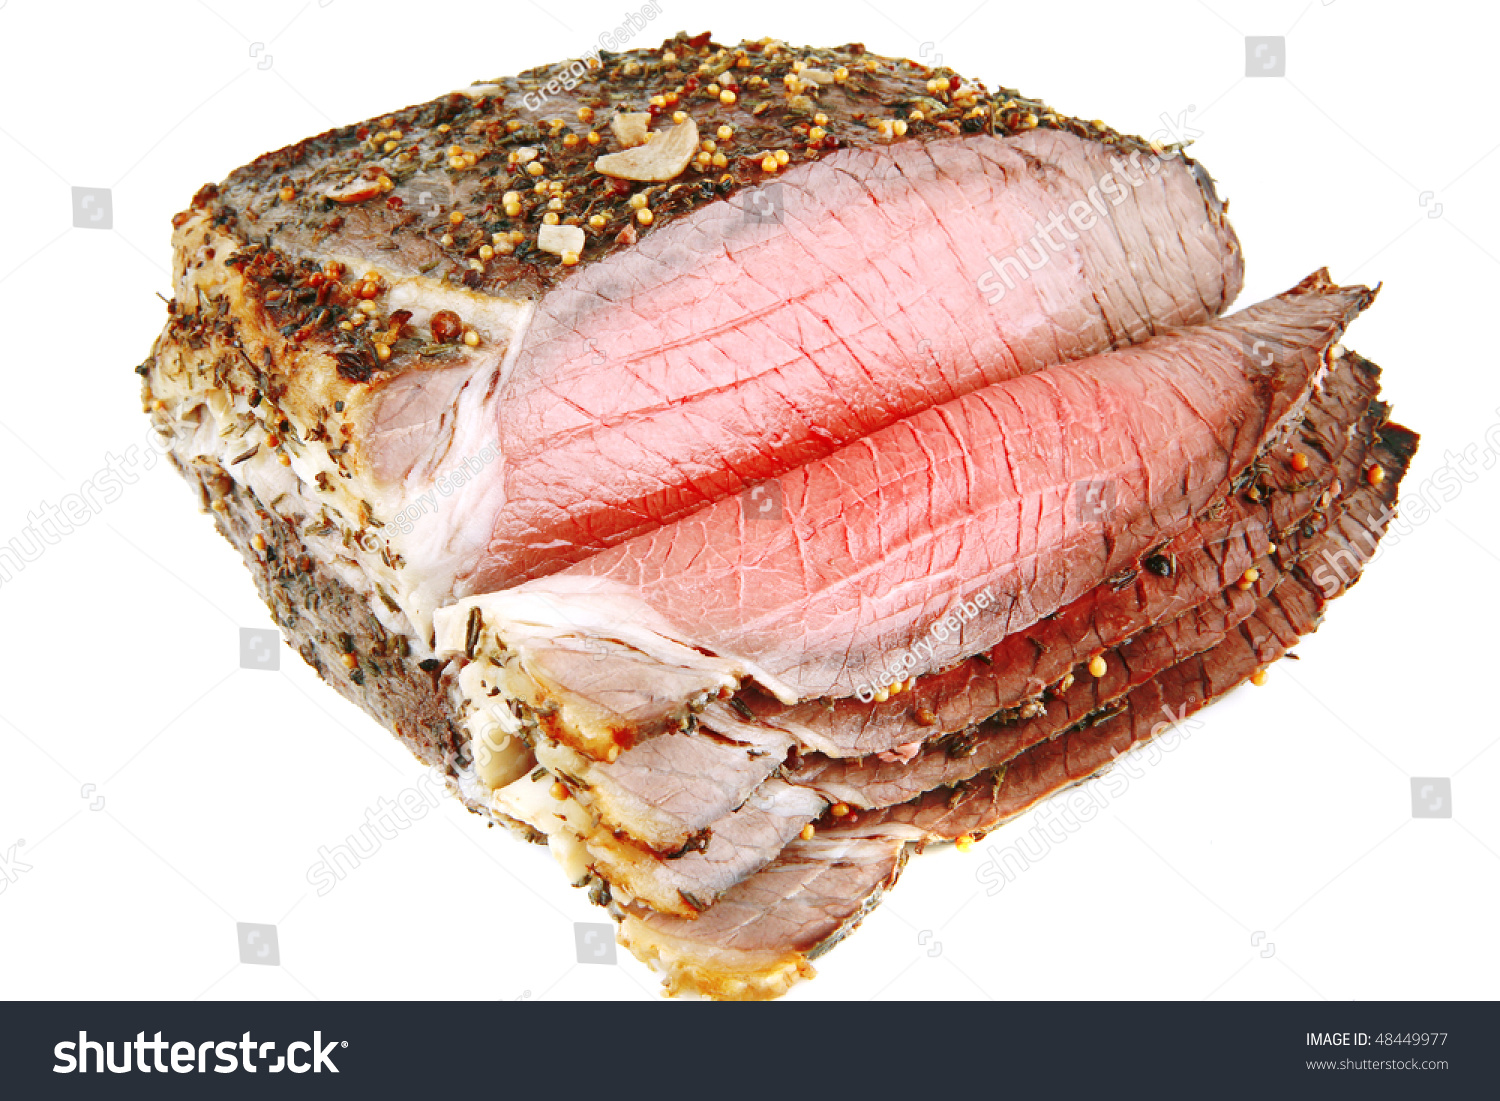 Whole Cow Meat Whole Beef Meat Slice On White Background Stock Photo